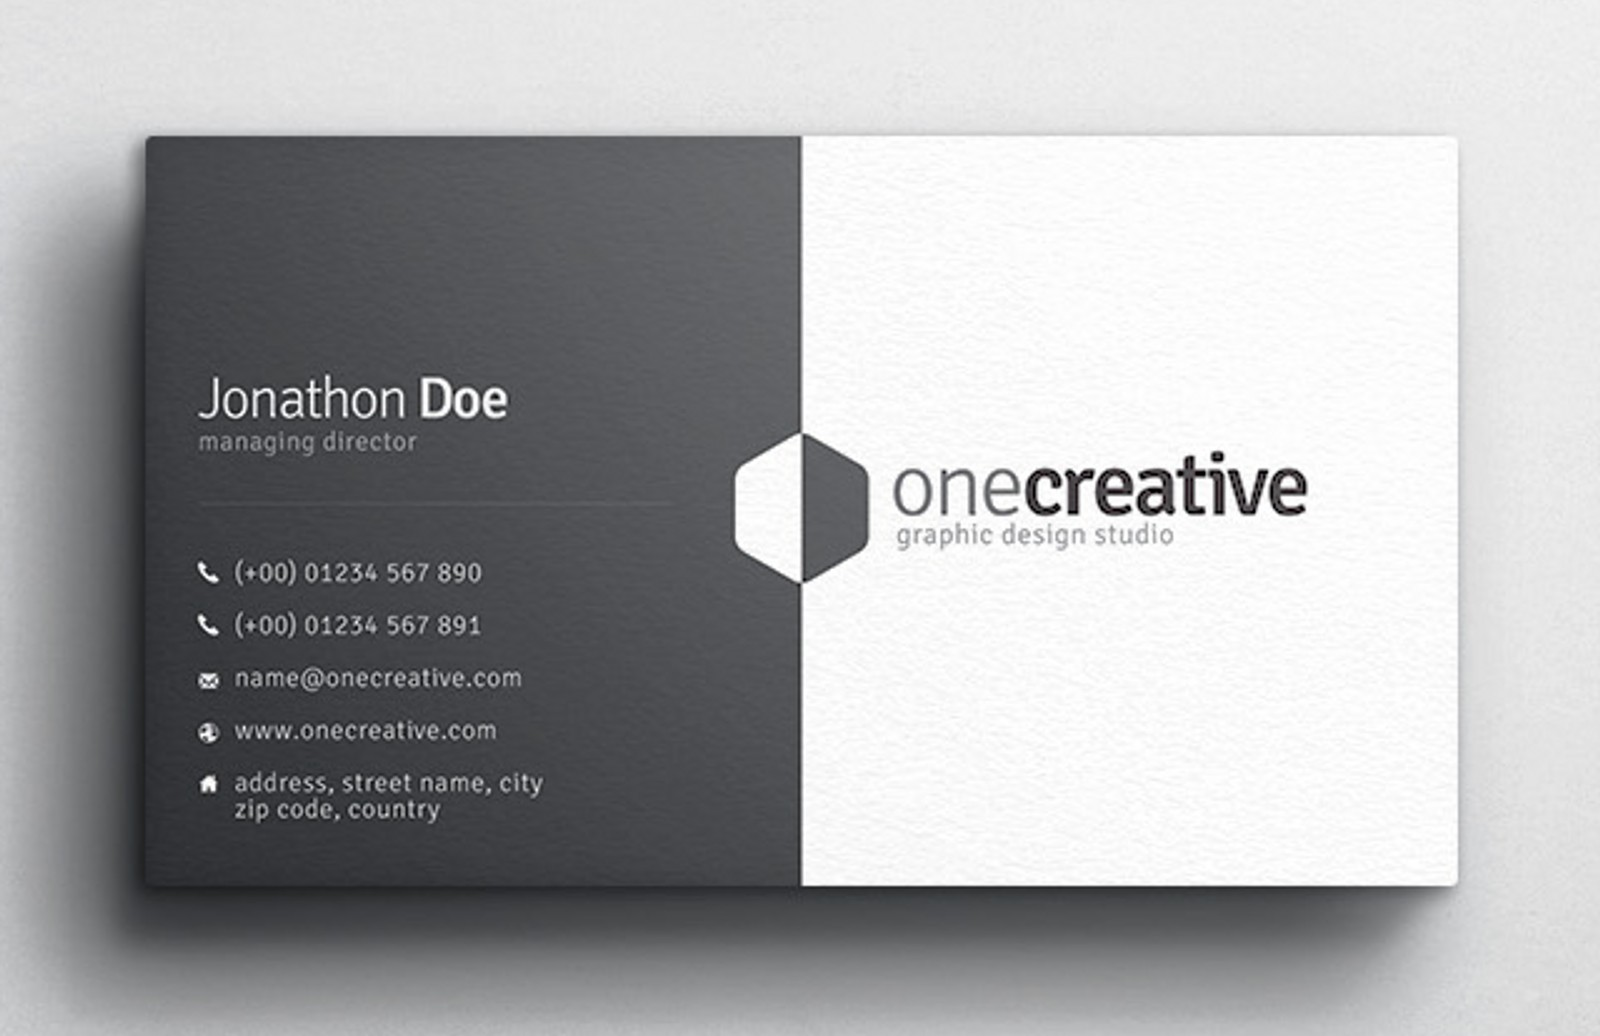 Duo business card design medialoot duo business card design reheart Gallery